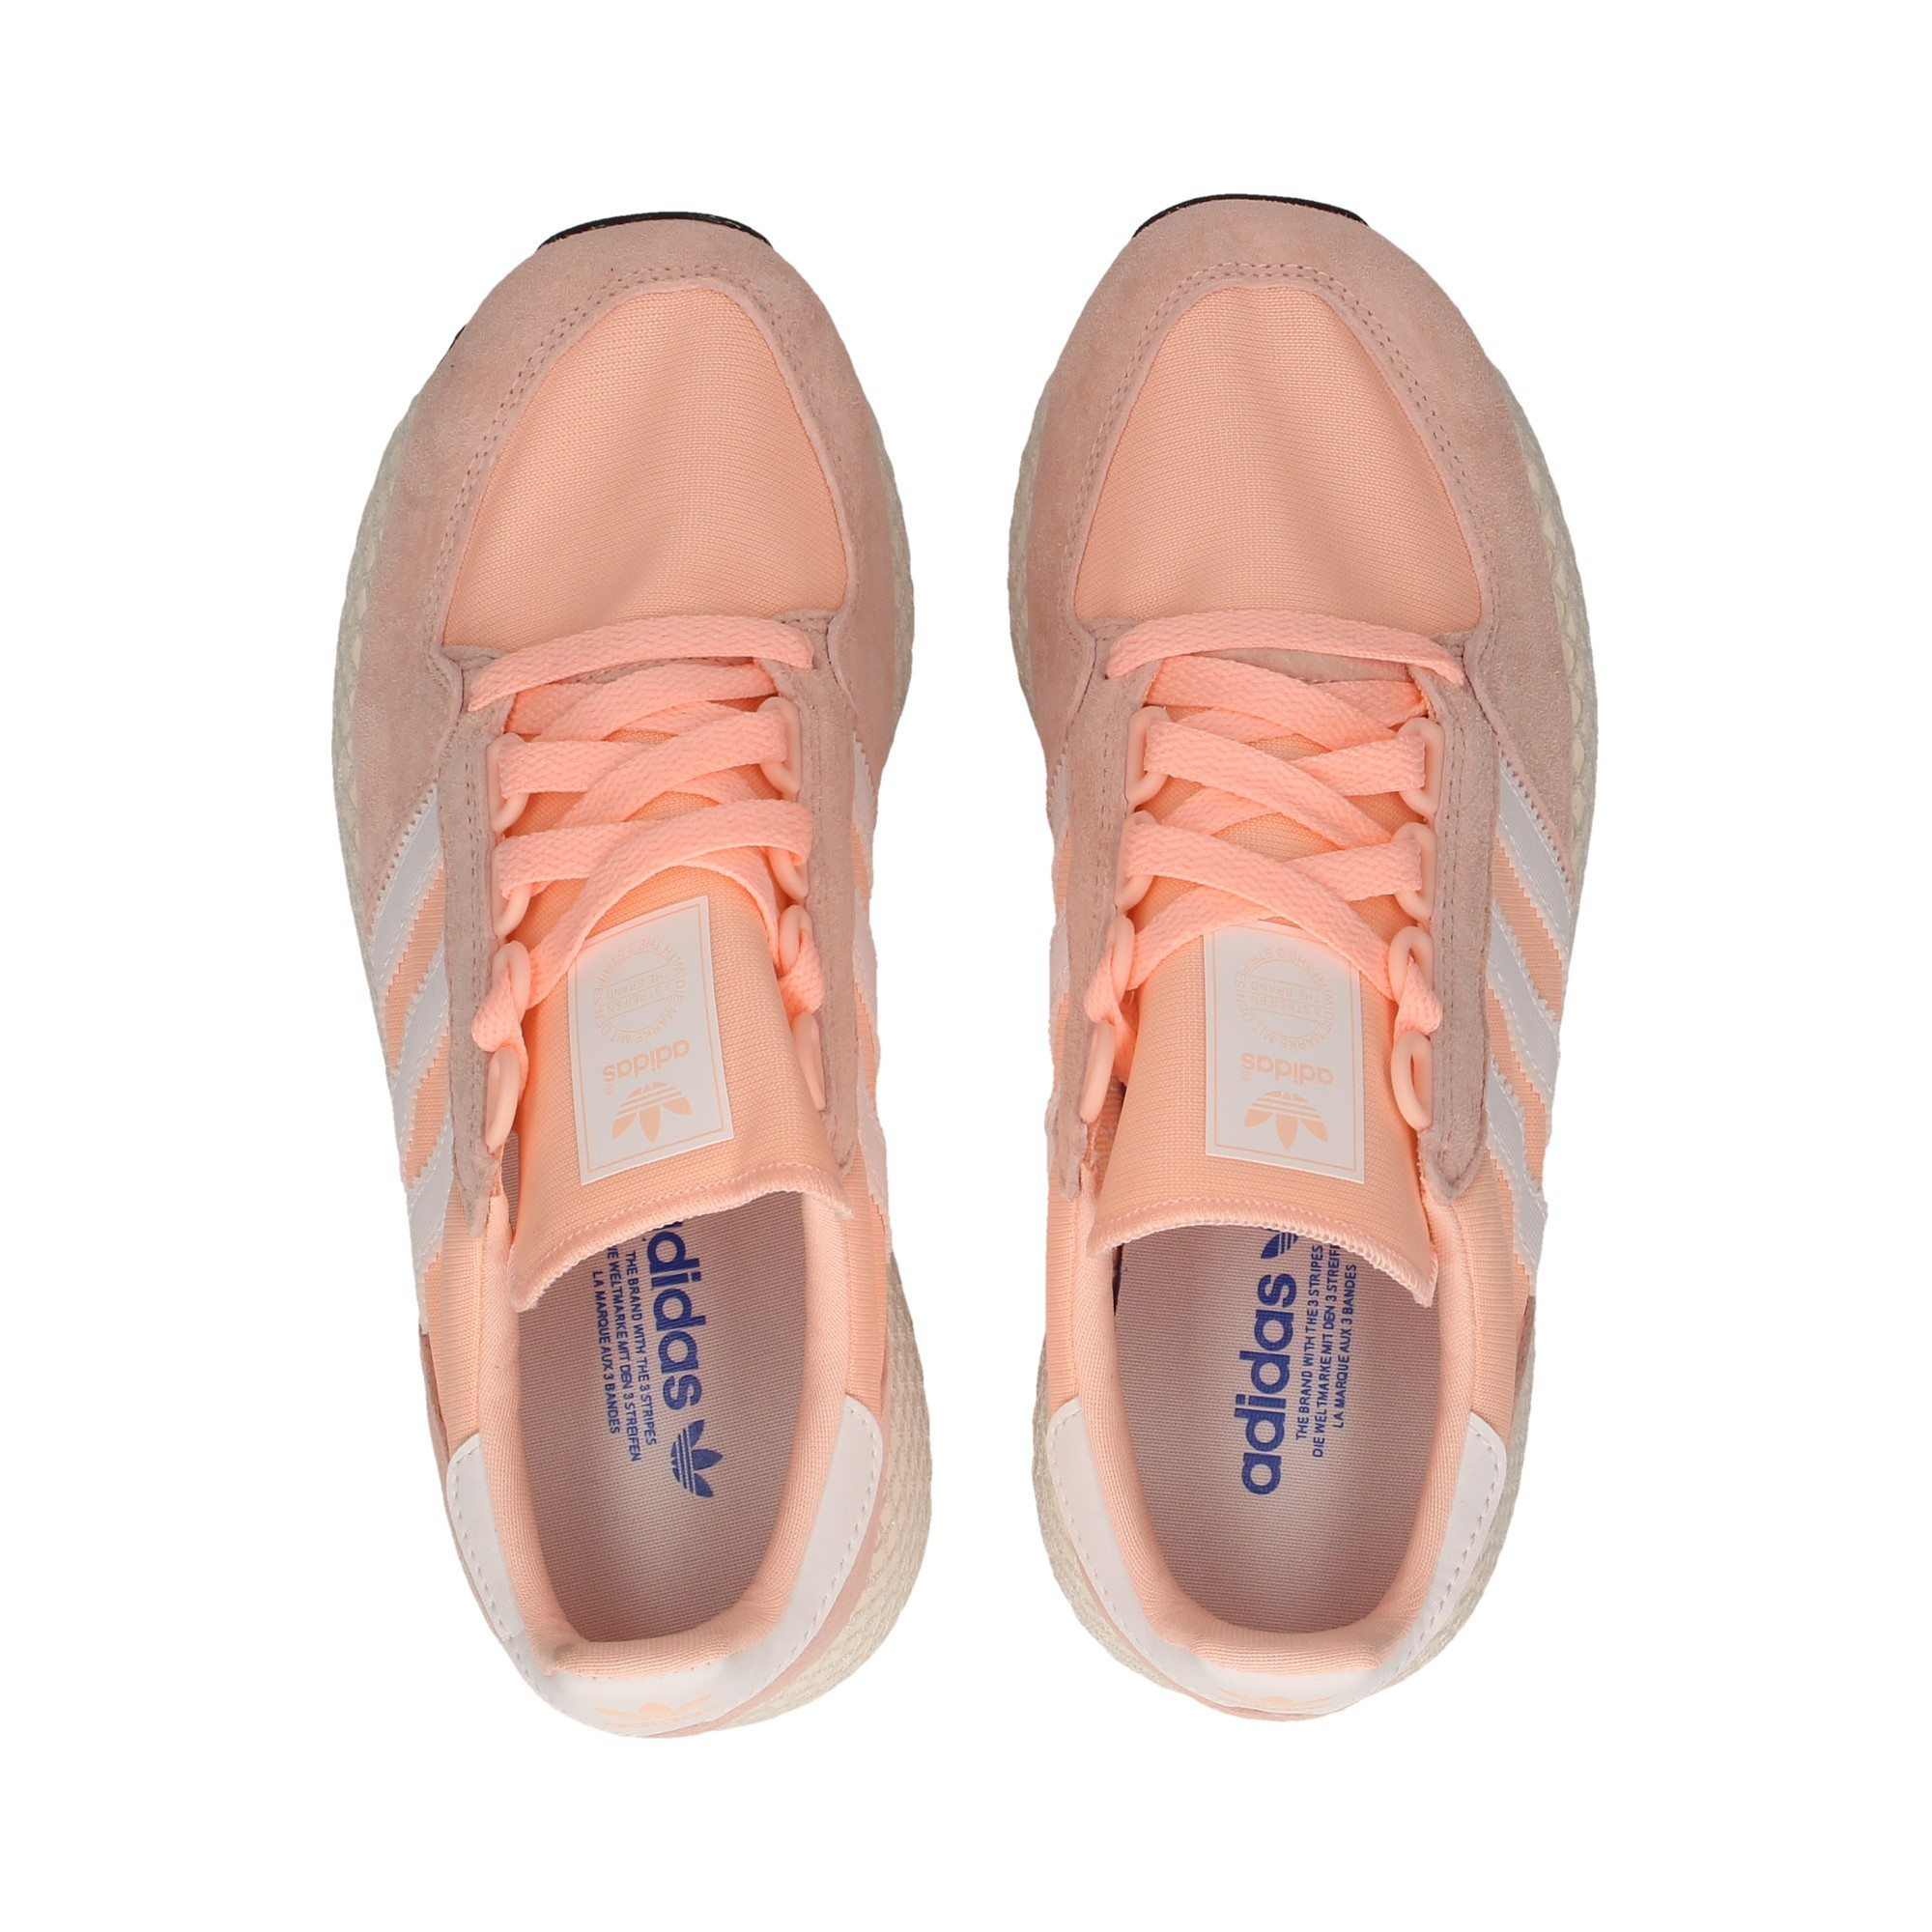 pas mal 2e7ac 7dc5f ADIDAS Women's Sneakers FOREST CLEORA PINK